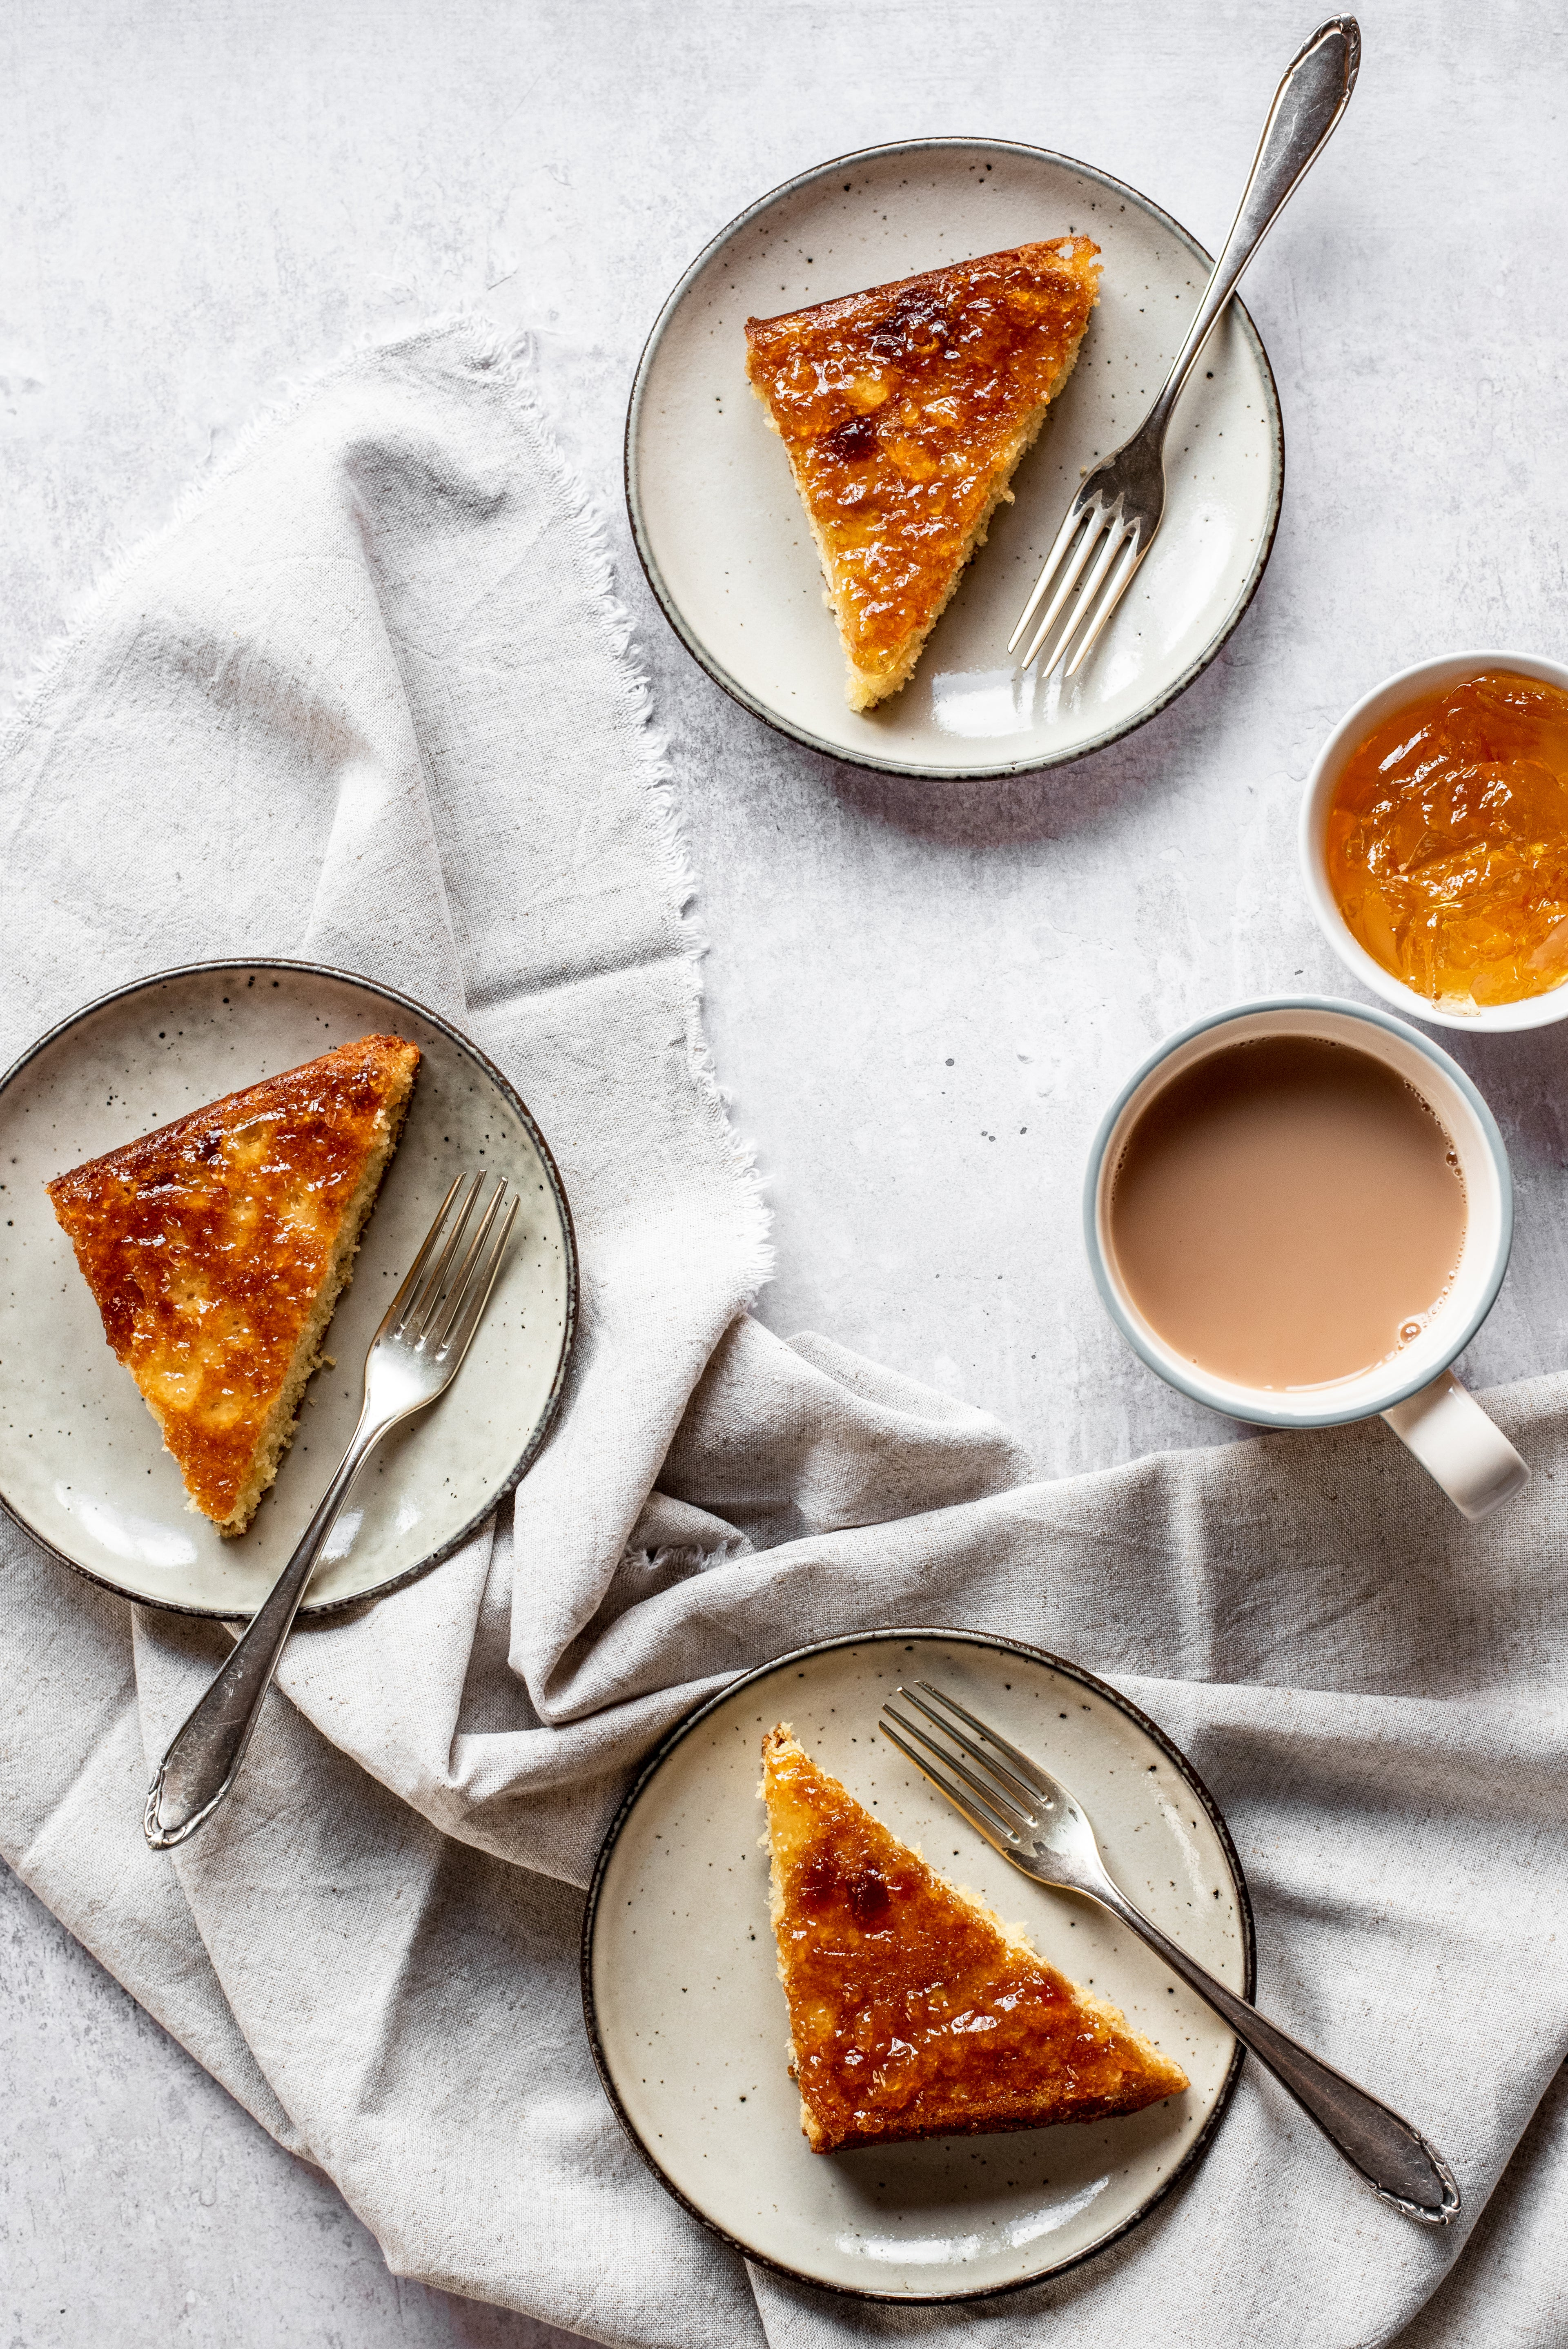 Flay lay of slices of Marmalade Traybake, on plates with forks, on top of linen next to a cup of tea and a bowl of marmalade